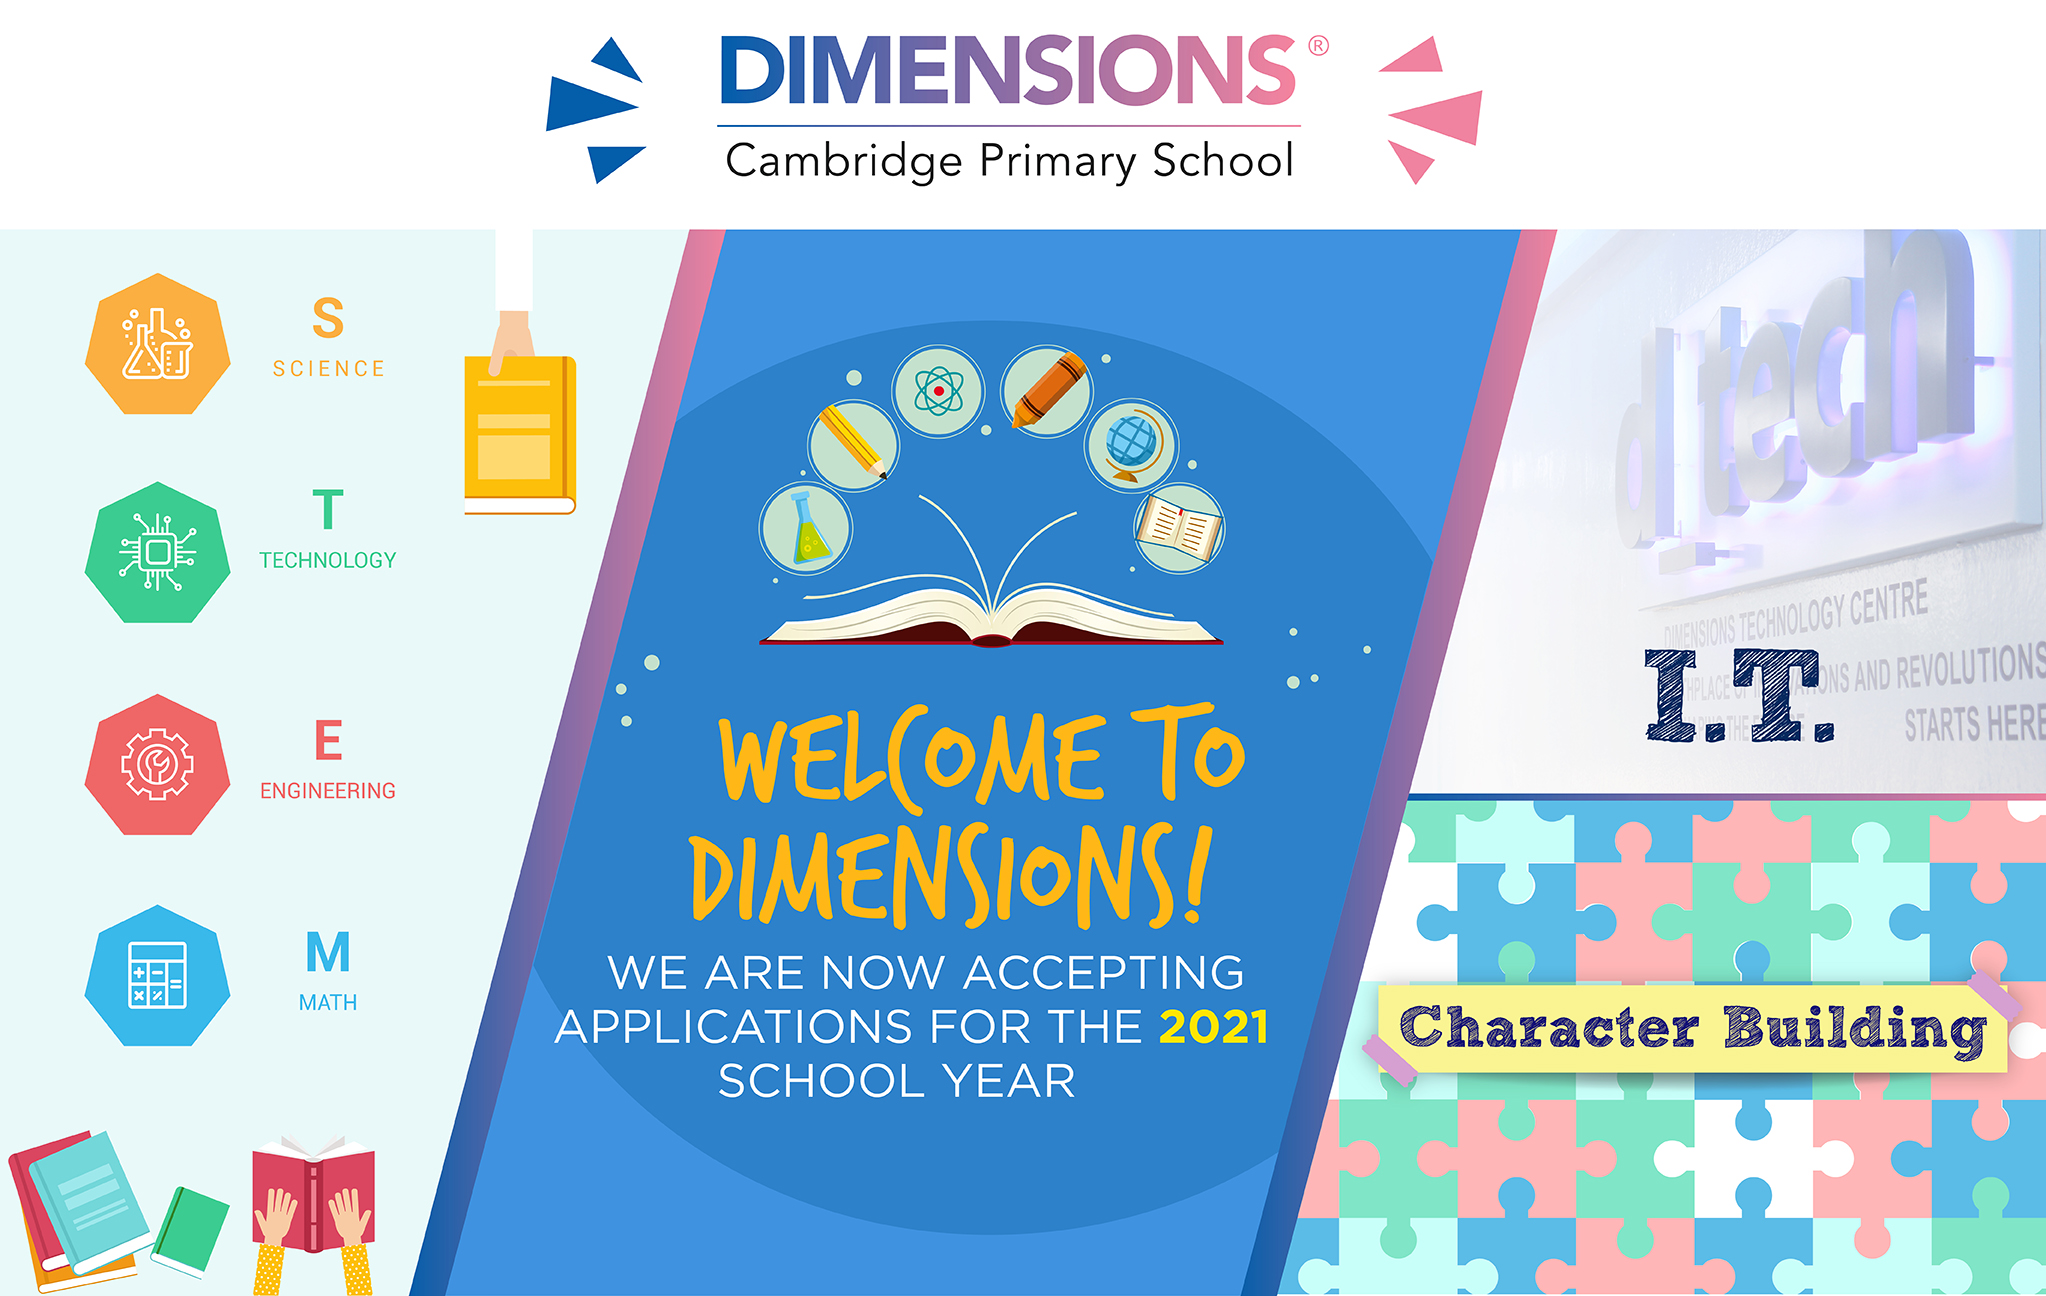 https://dimensions.edu.sg/landing/wp-content/uploads/2020/06/R2-Cambridge-Primary-Education-1.jpg